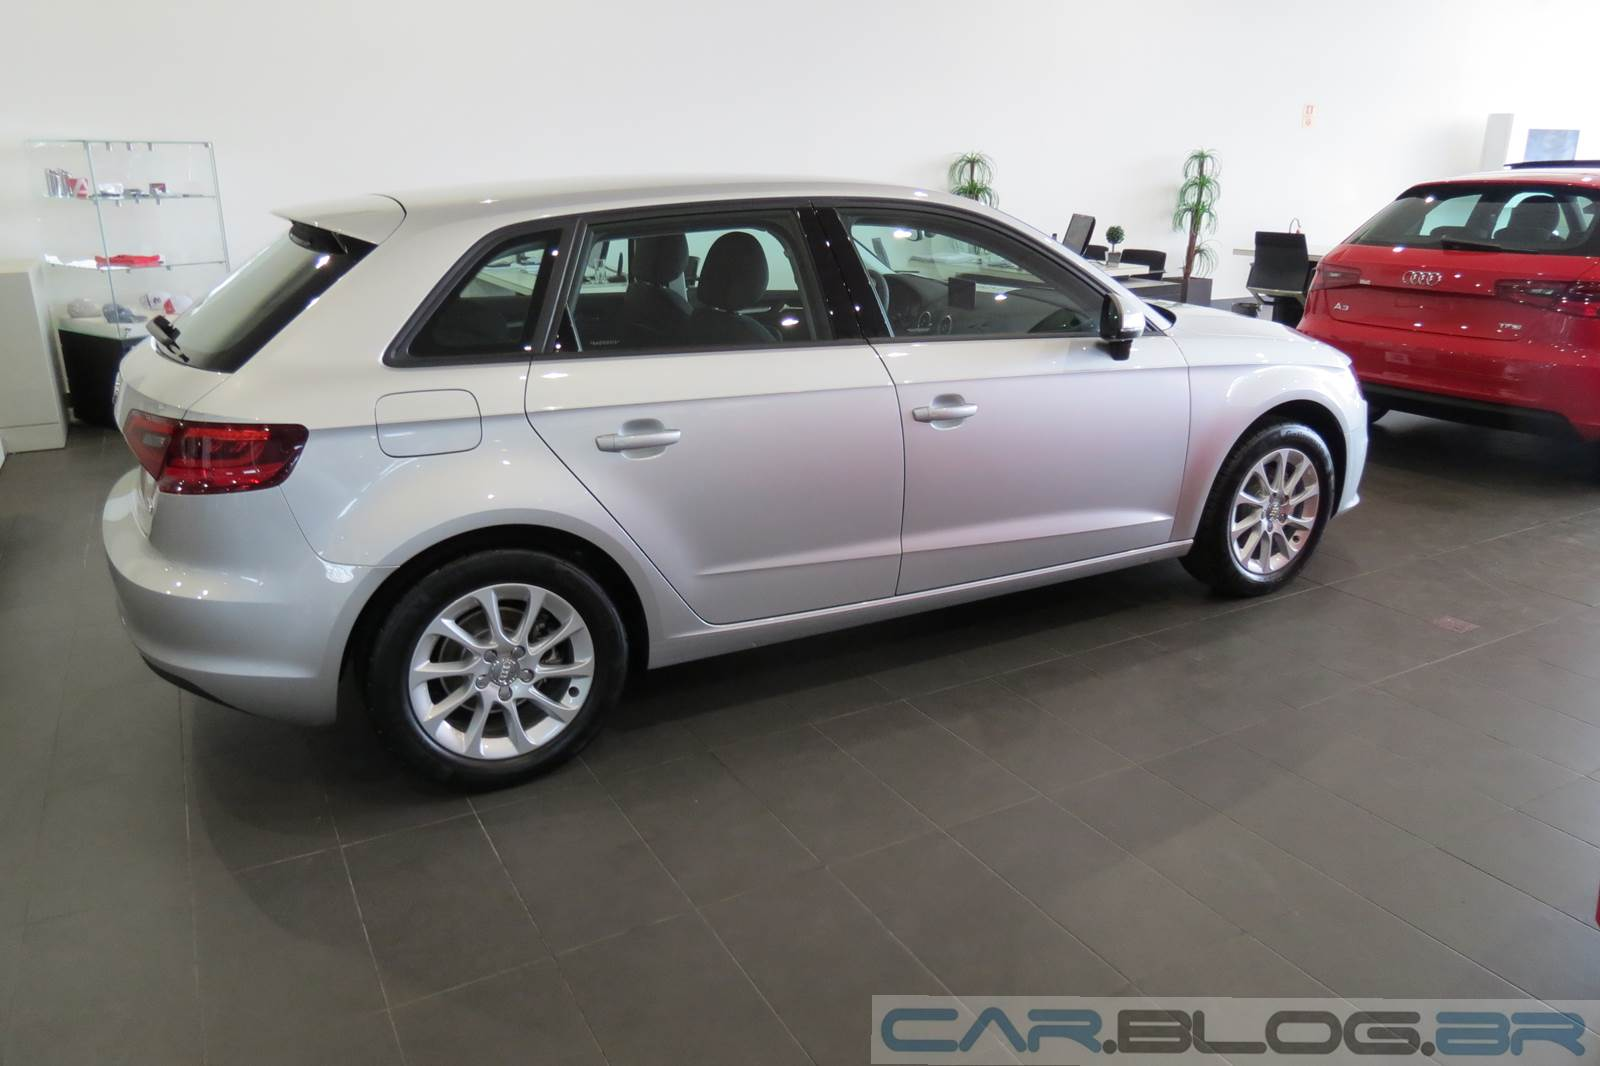 audi a3 sportback 2014 fotos v deo pre o consumo e especifica es car blog br. Black Bedroom Furniture Sets. Home Design Ideas